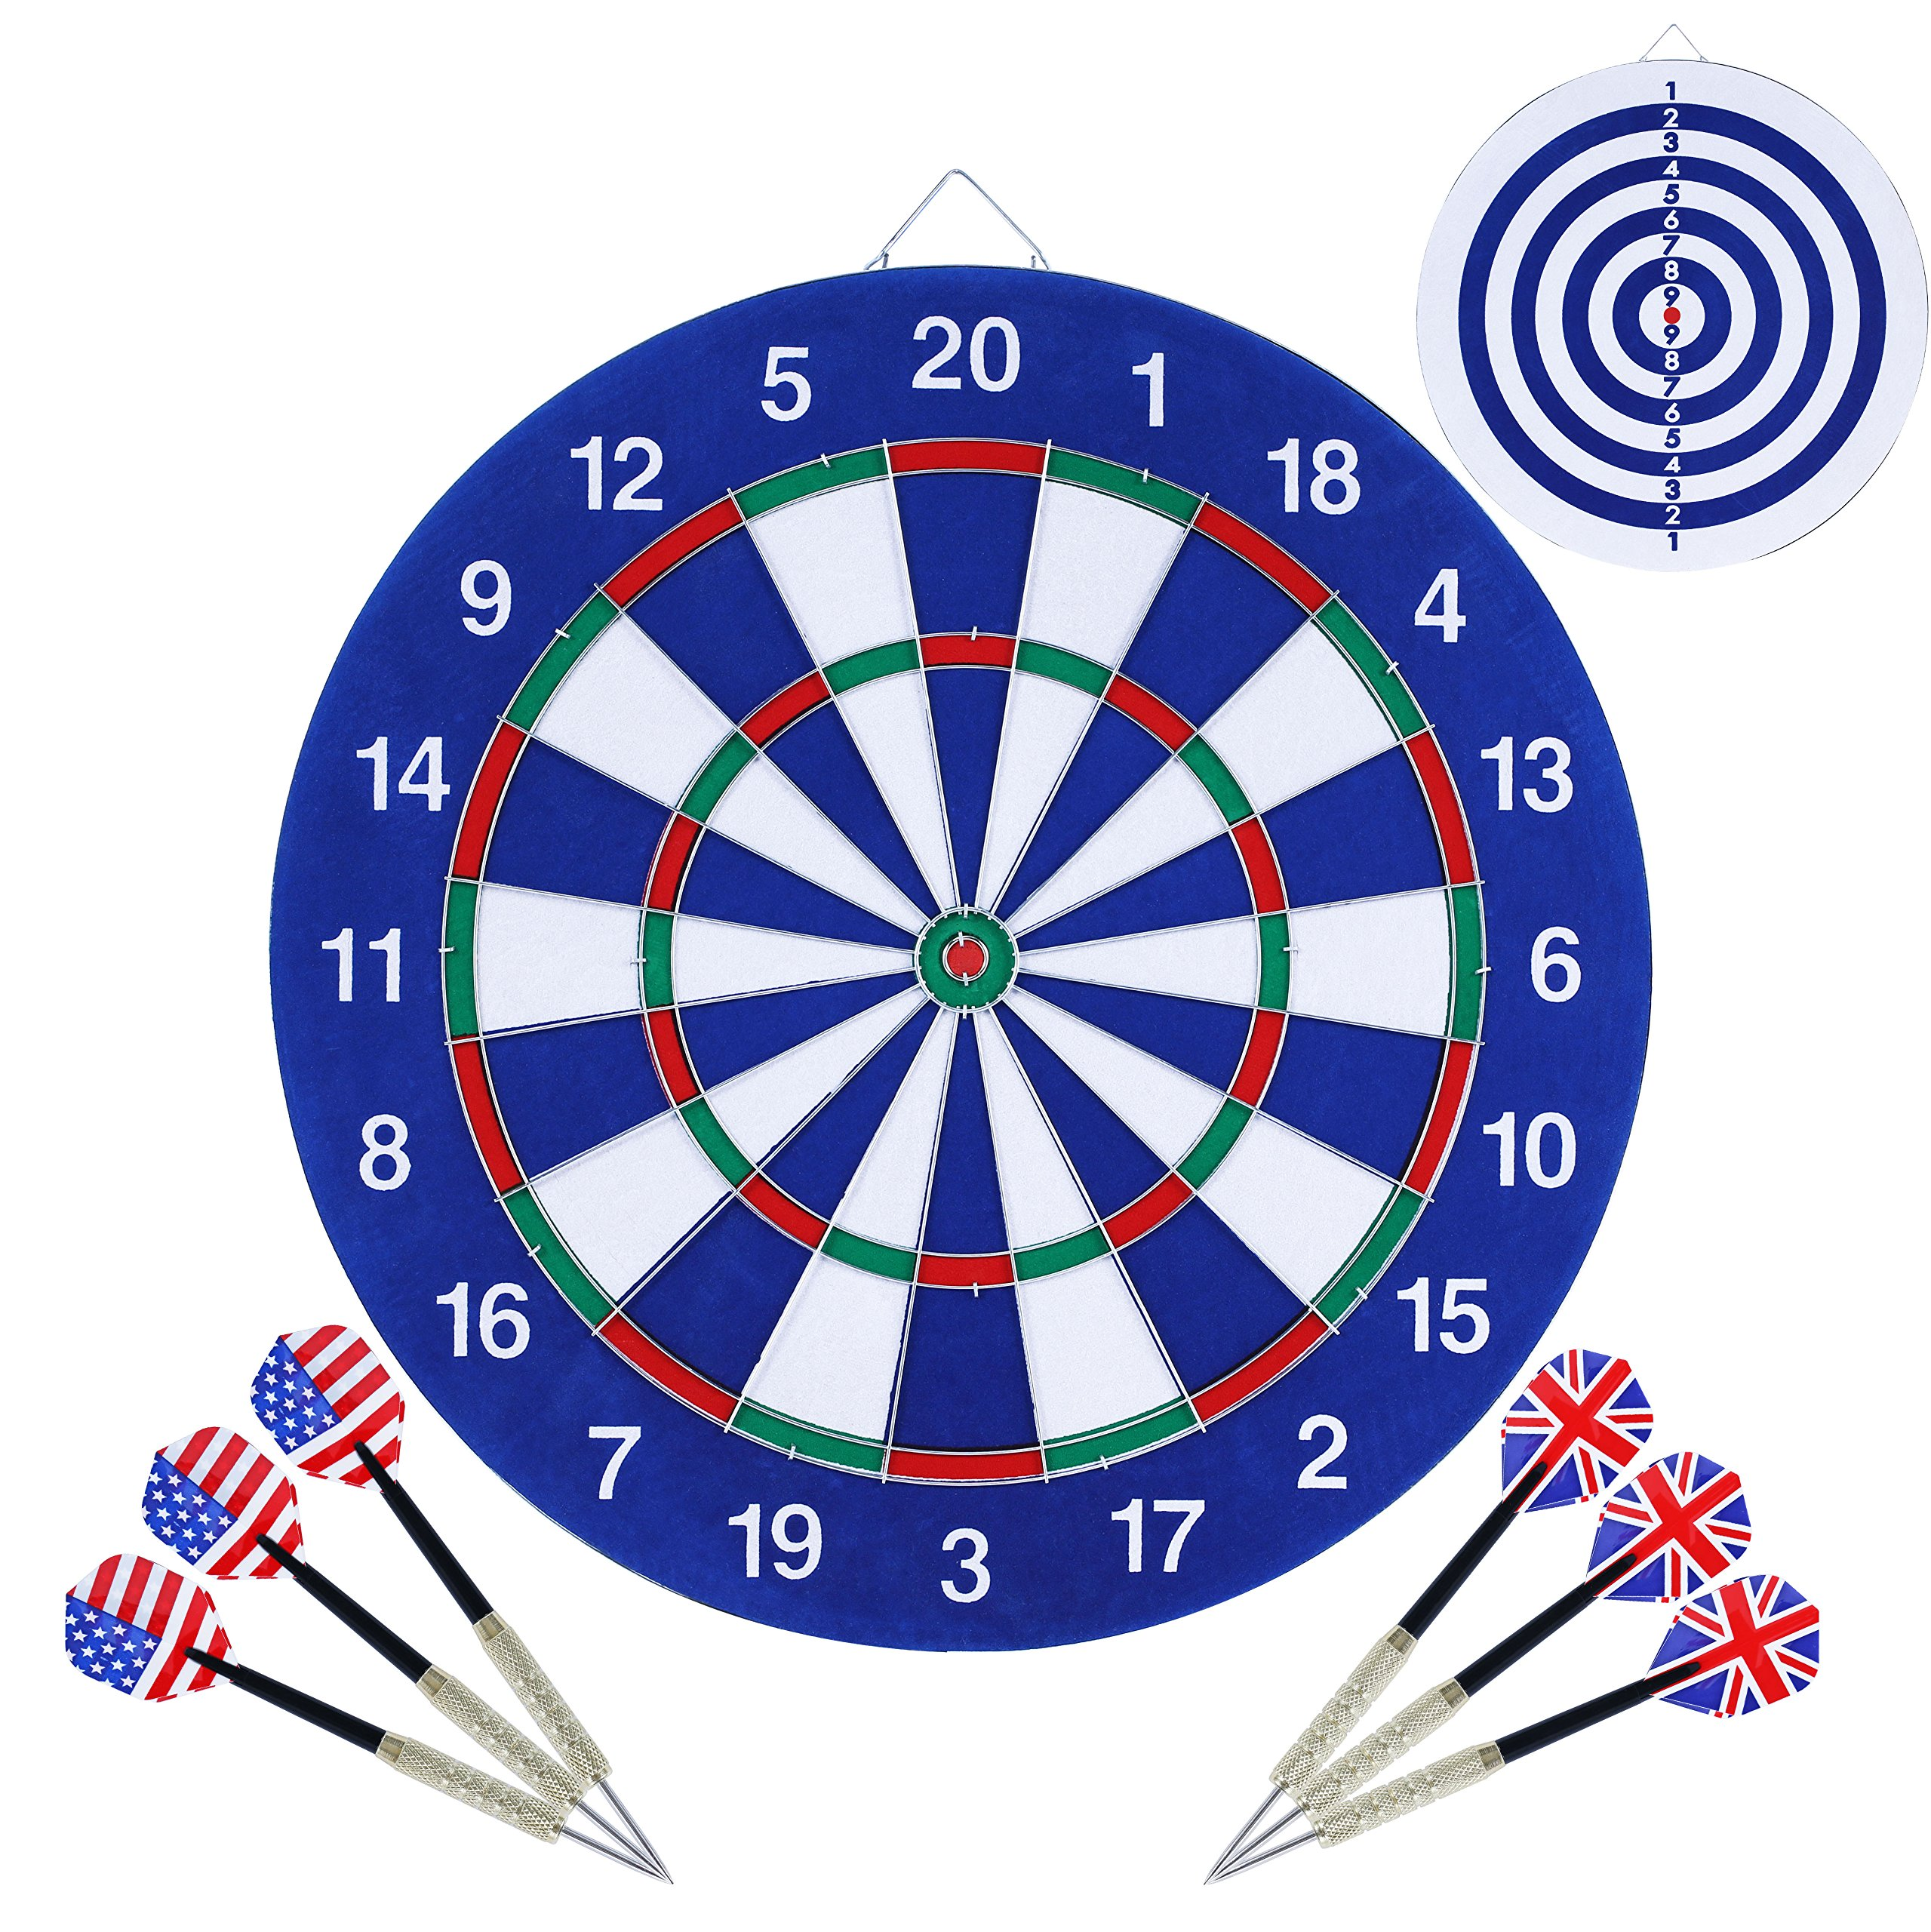 Vopa Dartboard 18 Inch Steel Soft Tip Dart Board Set with 6 Extra Darts for Kids Bar Room Door Garage and more